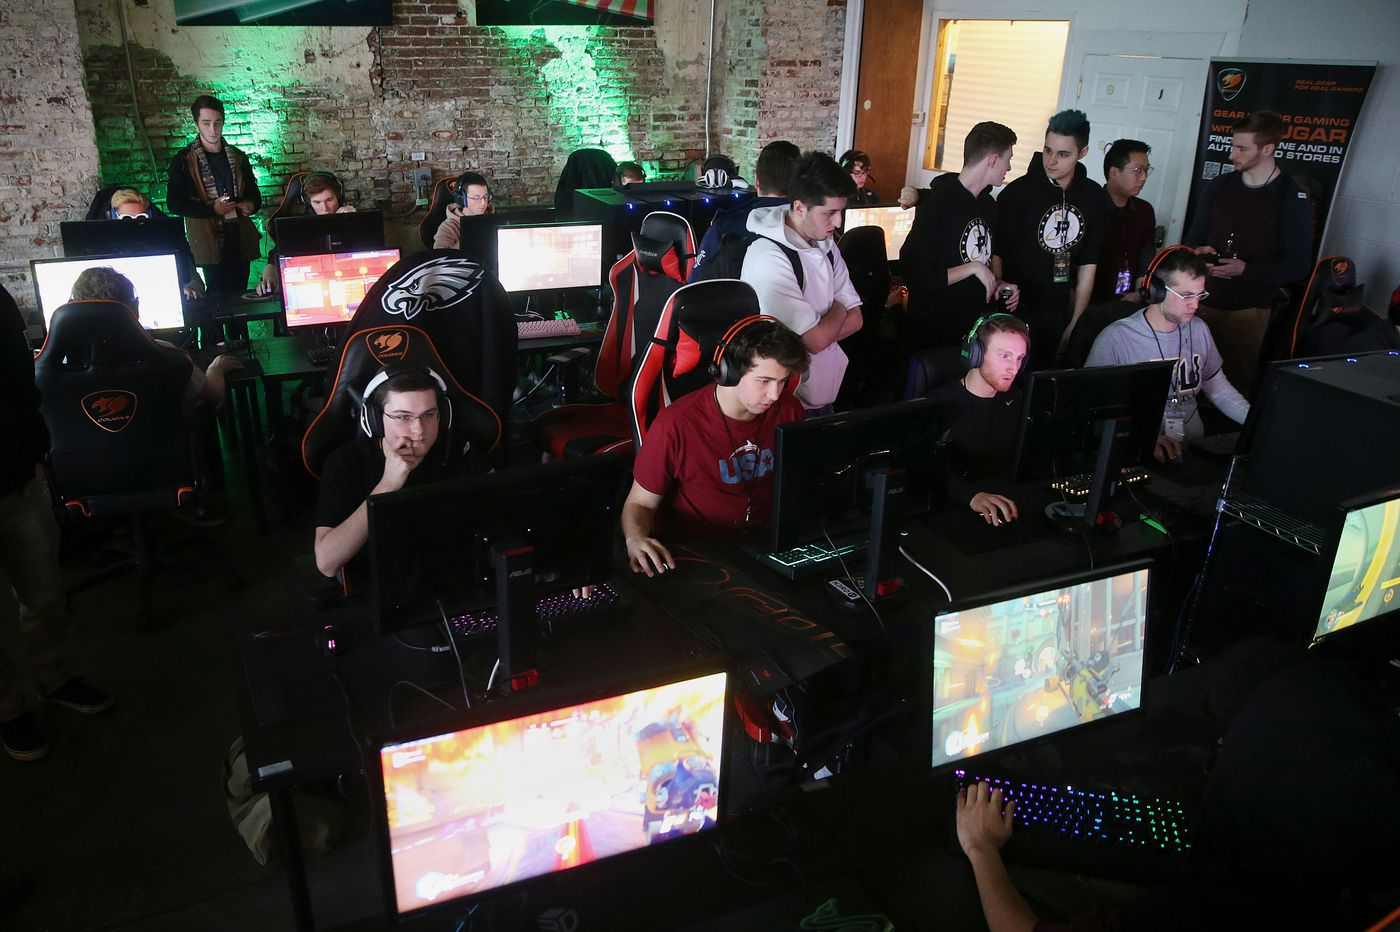 Philadelphia Fusion esports team makes the Overwatch playoffs. Is this the start of a billion-dollar industry?